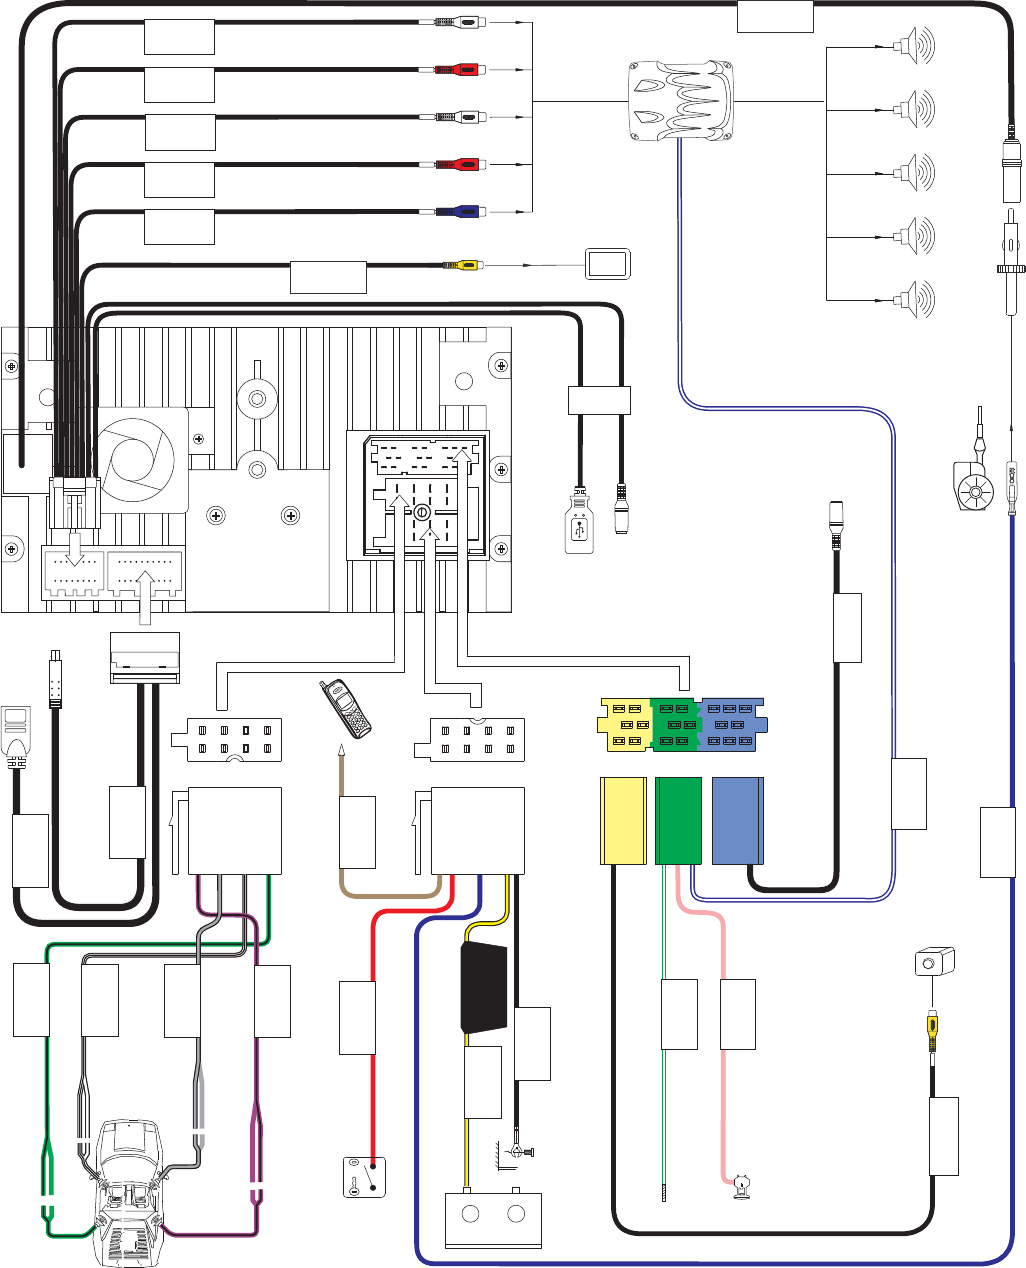 34fbcac4 7bef 4eb8 b34c 690a937048d0 bg4 jensen wiring diagram jensen vm9215bt update \u2022 wiring diagrams j jensen vm9214 wiring harness at mifinder.co